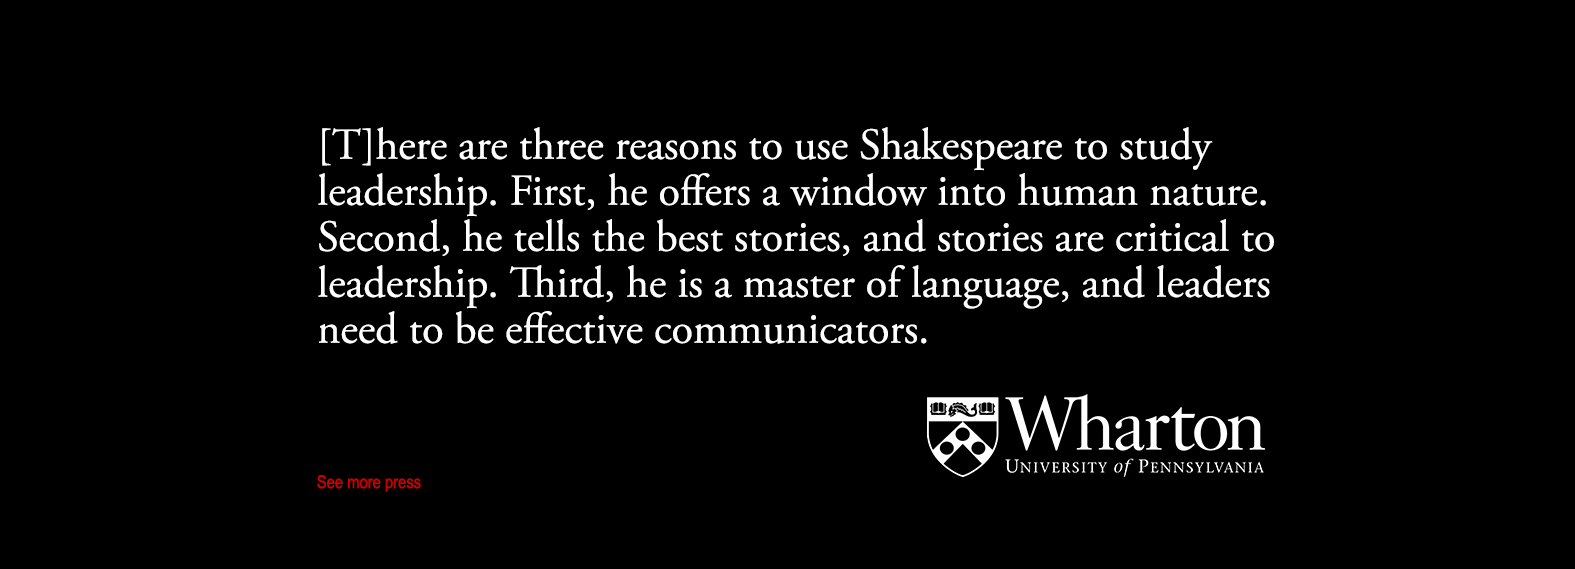 Movers and Shakespeares review wharton business school.png